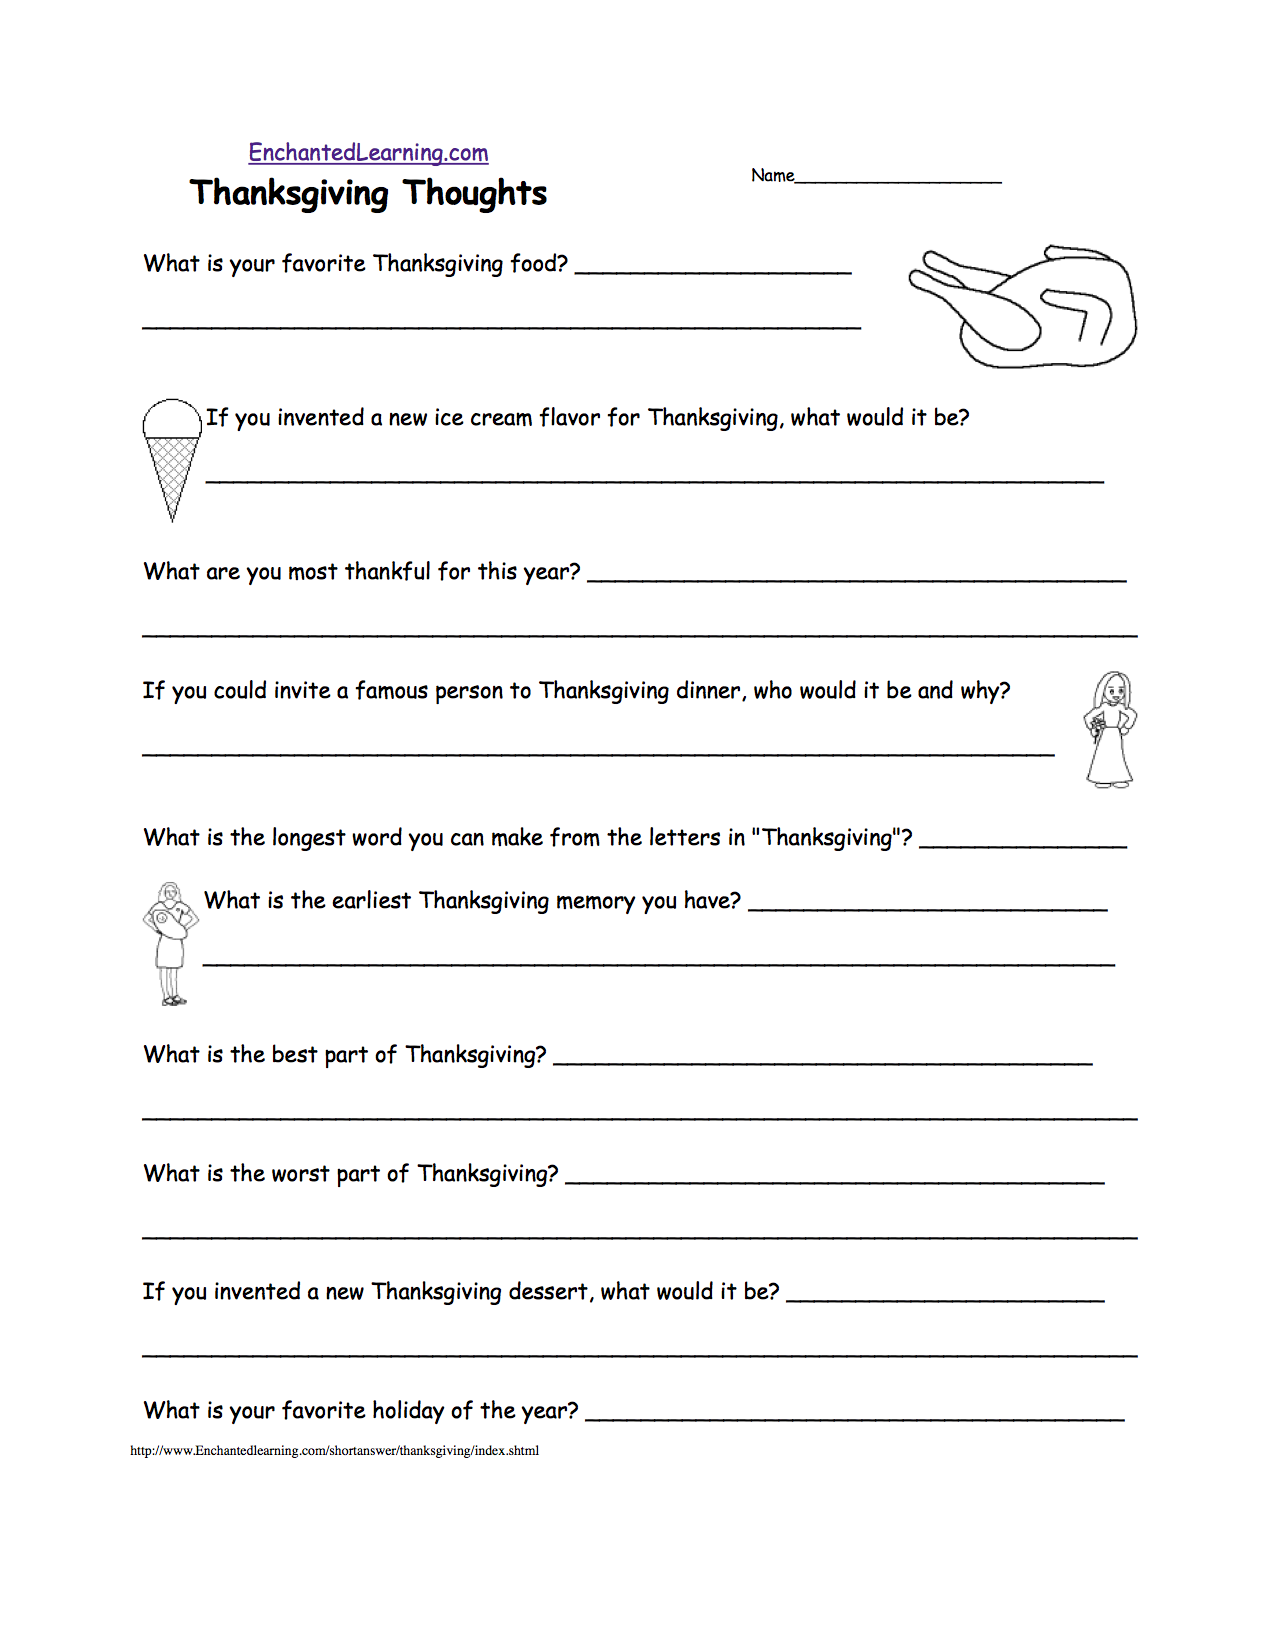 worksheet Early Writing Worksheets thanksgiving writing worksheets enchantedlearning com thanksgiving